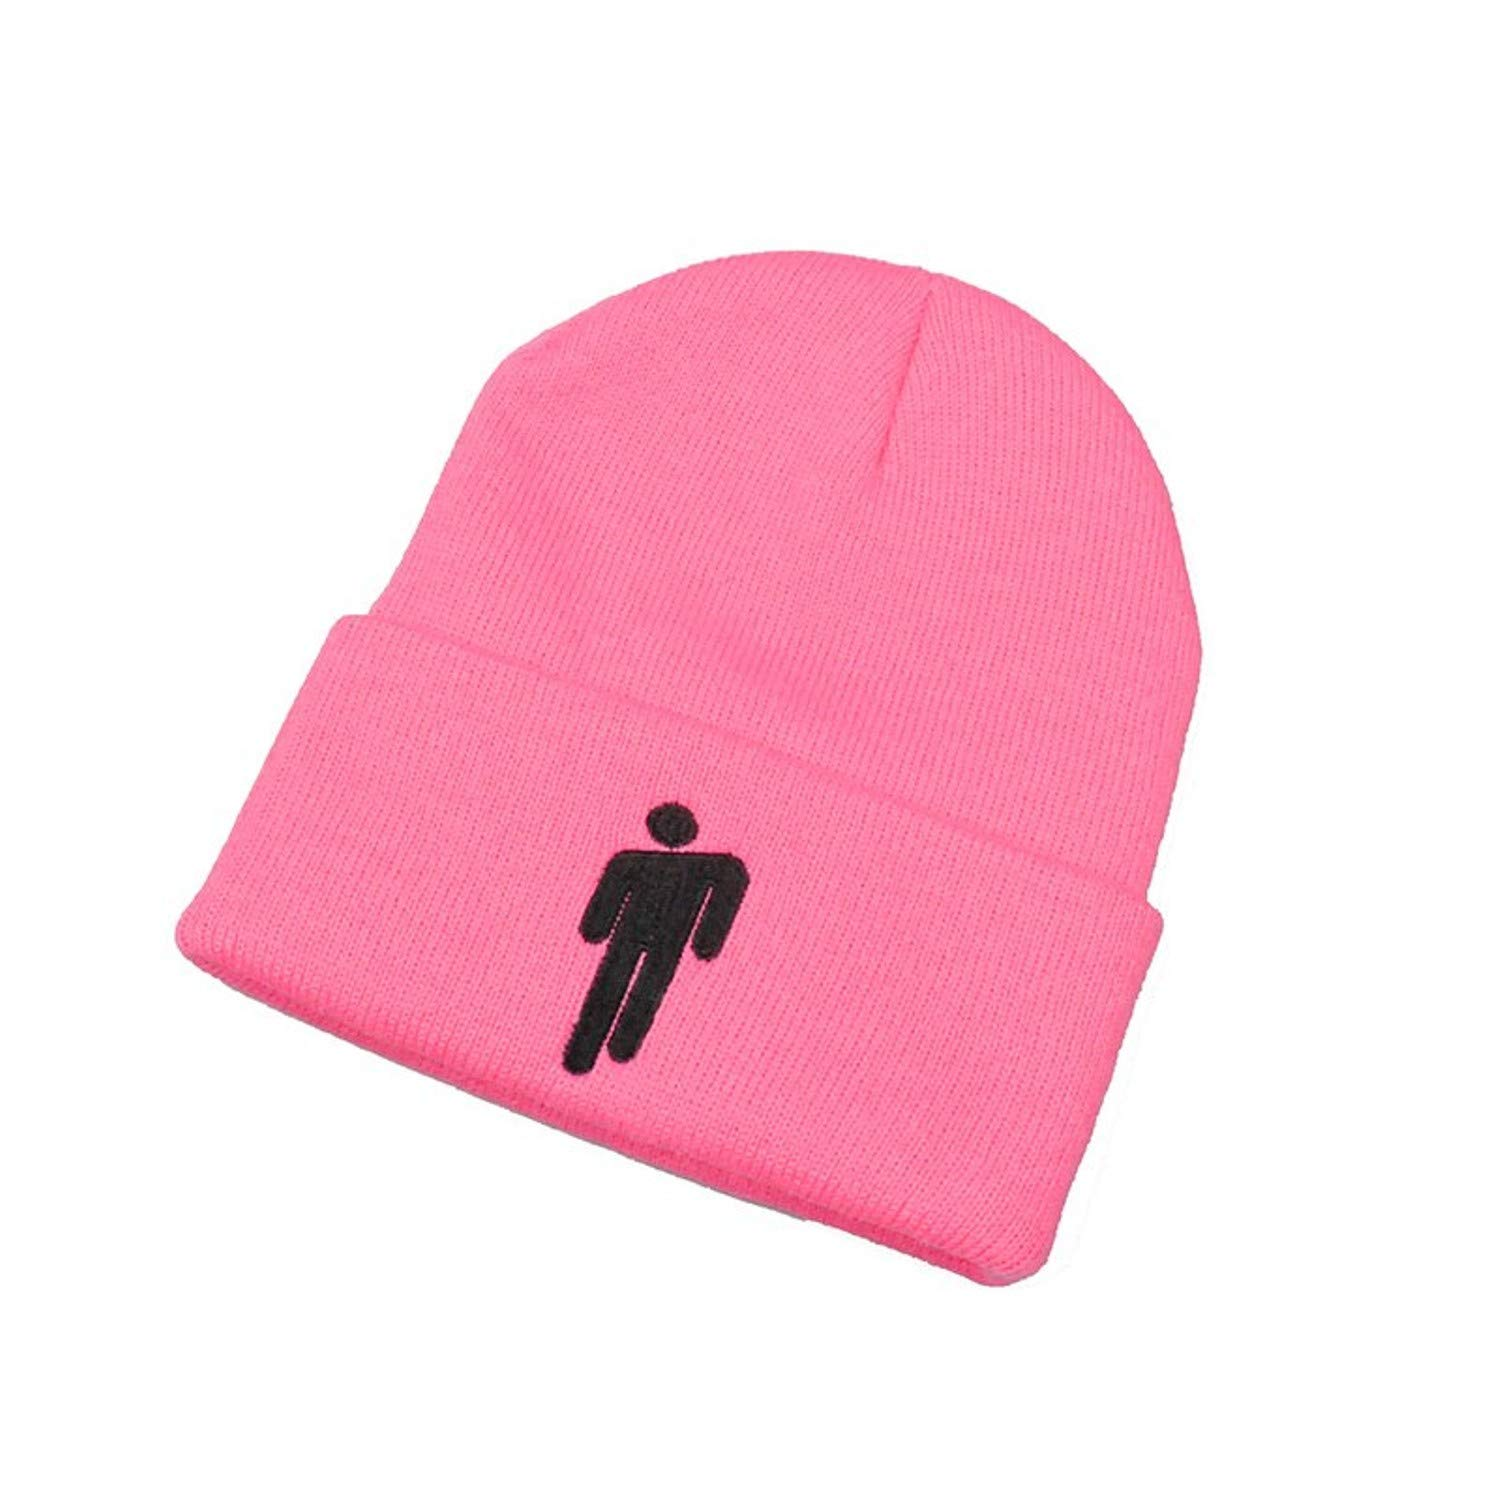 Amazon.com: Billie Eilish Beanie Beany - Gorro para mujer ...